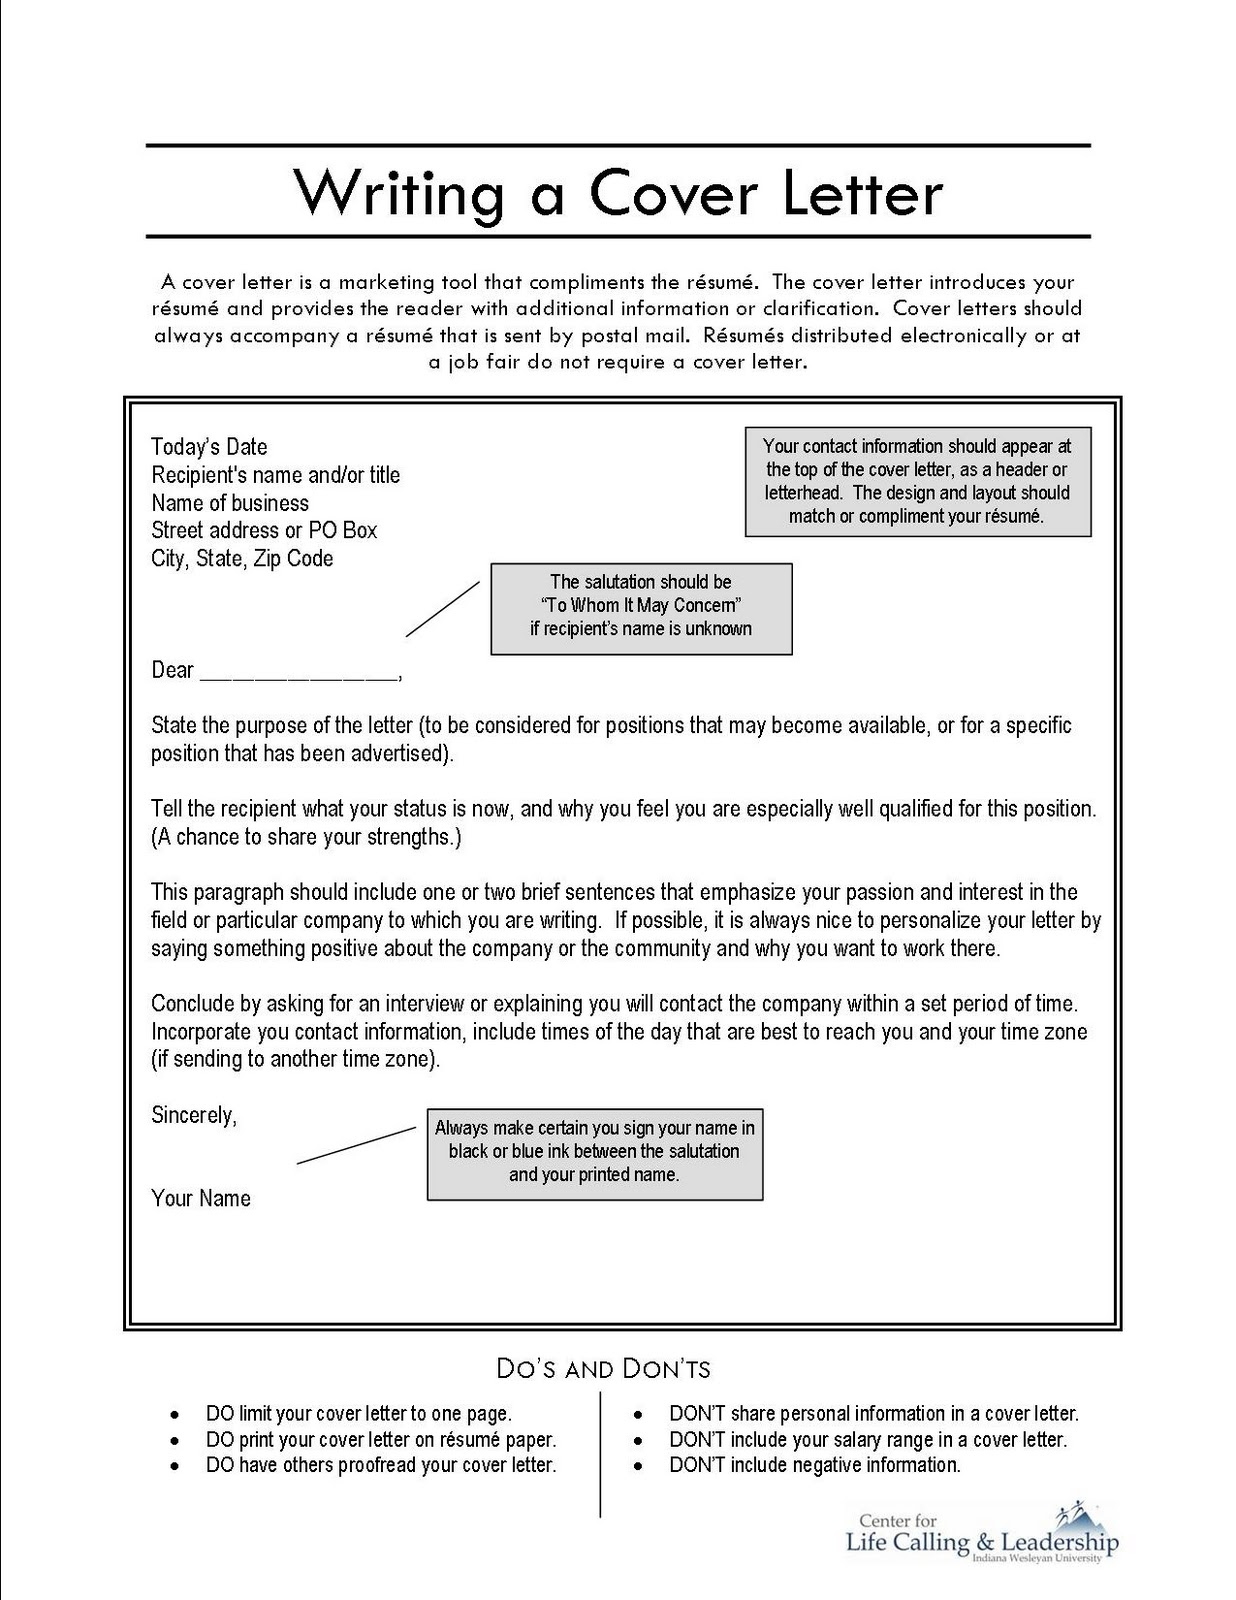 Affordable Essay Writing Only High Quality Doing Your Mind Cover